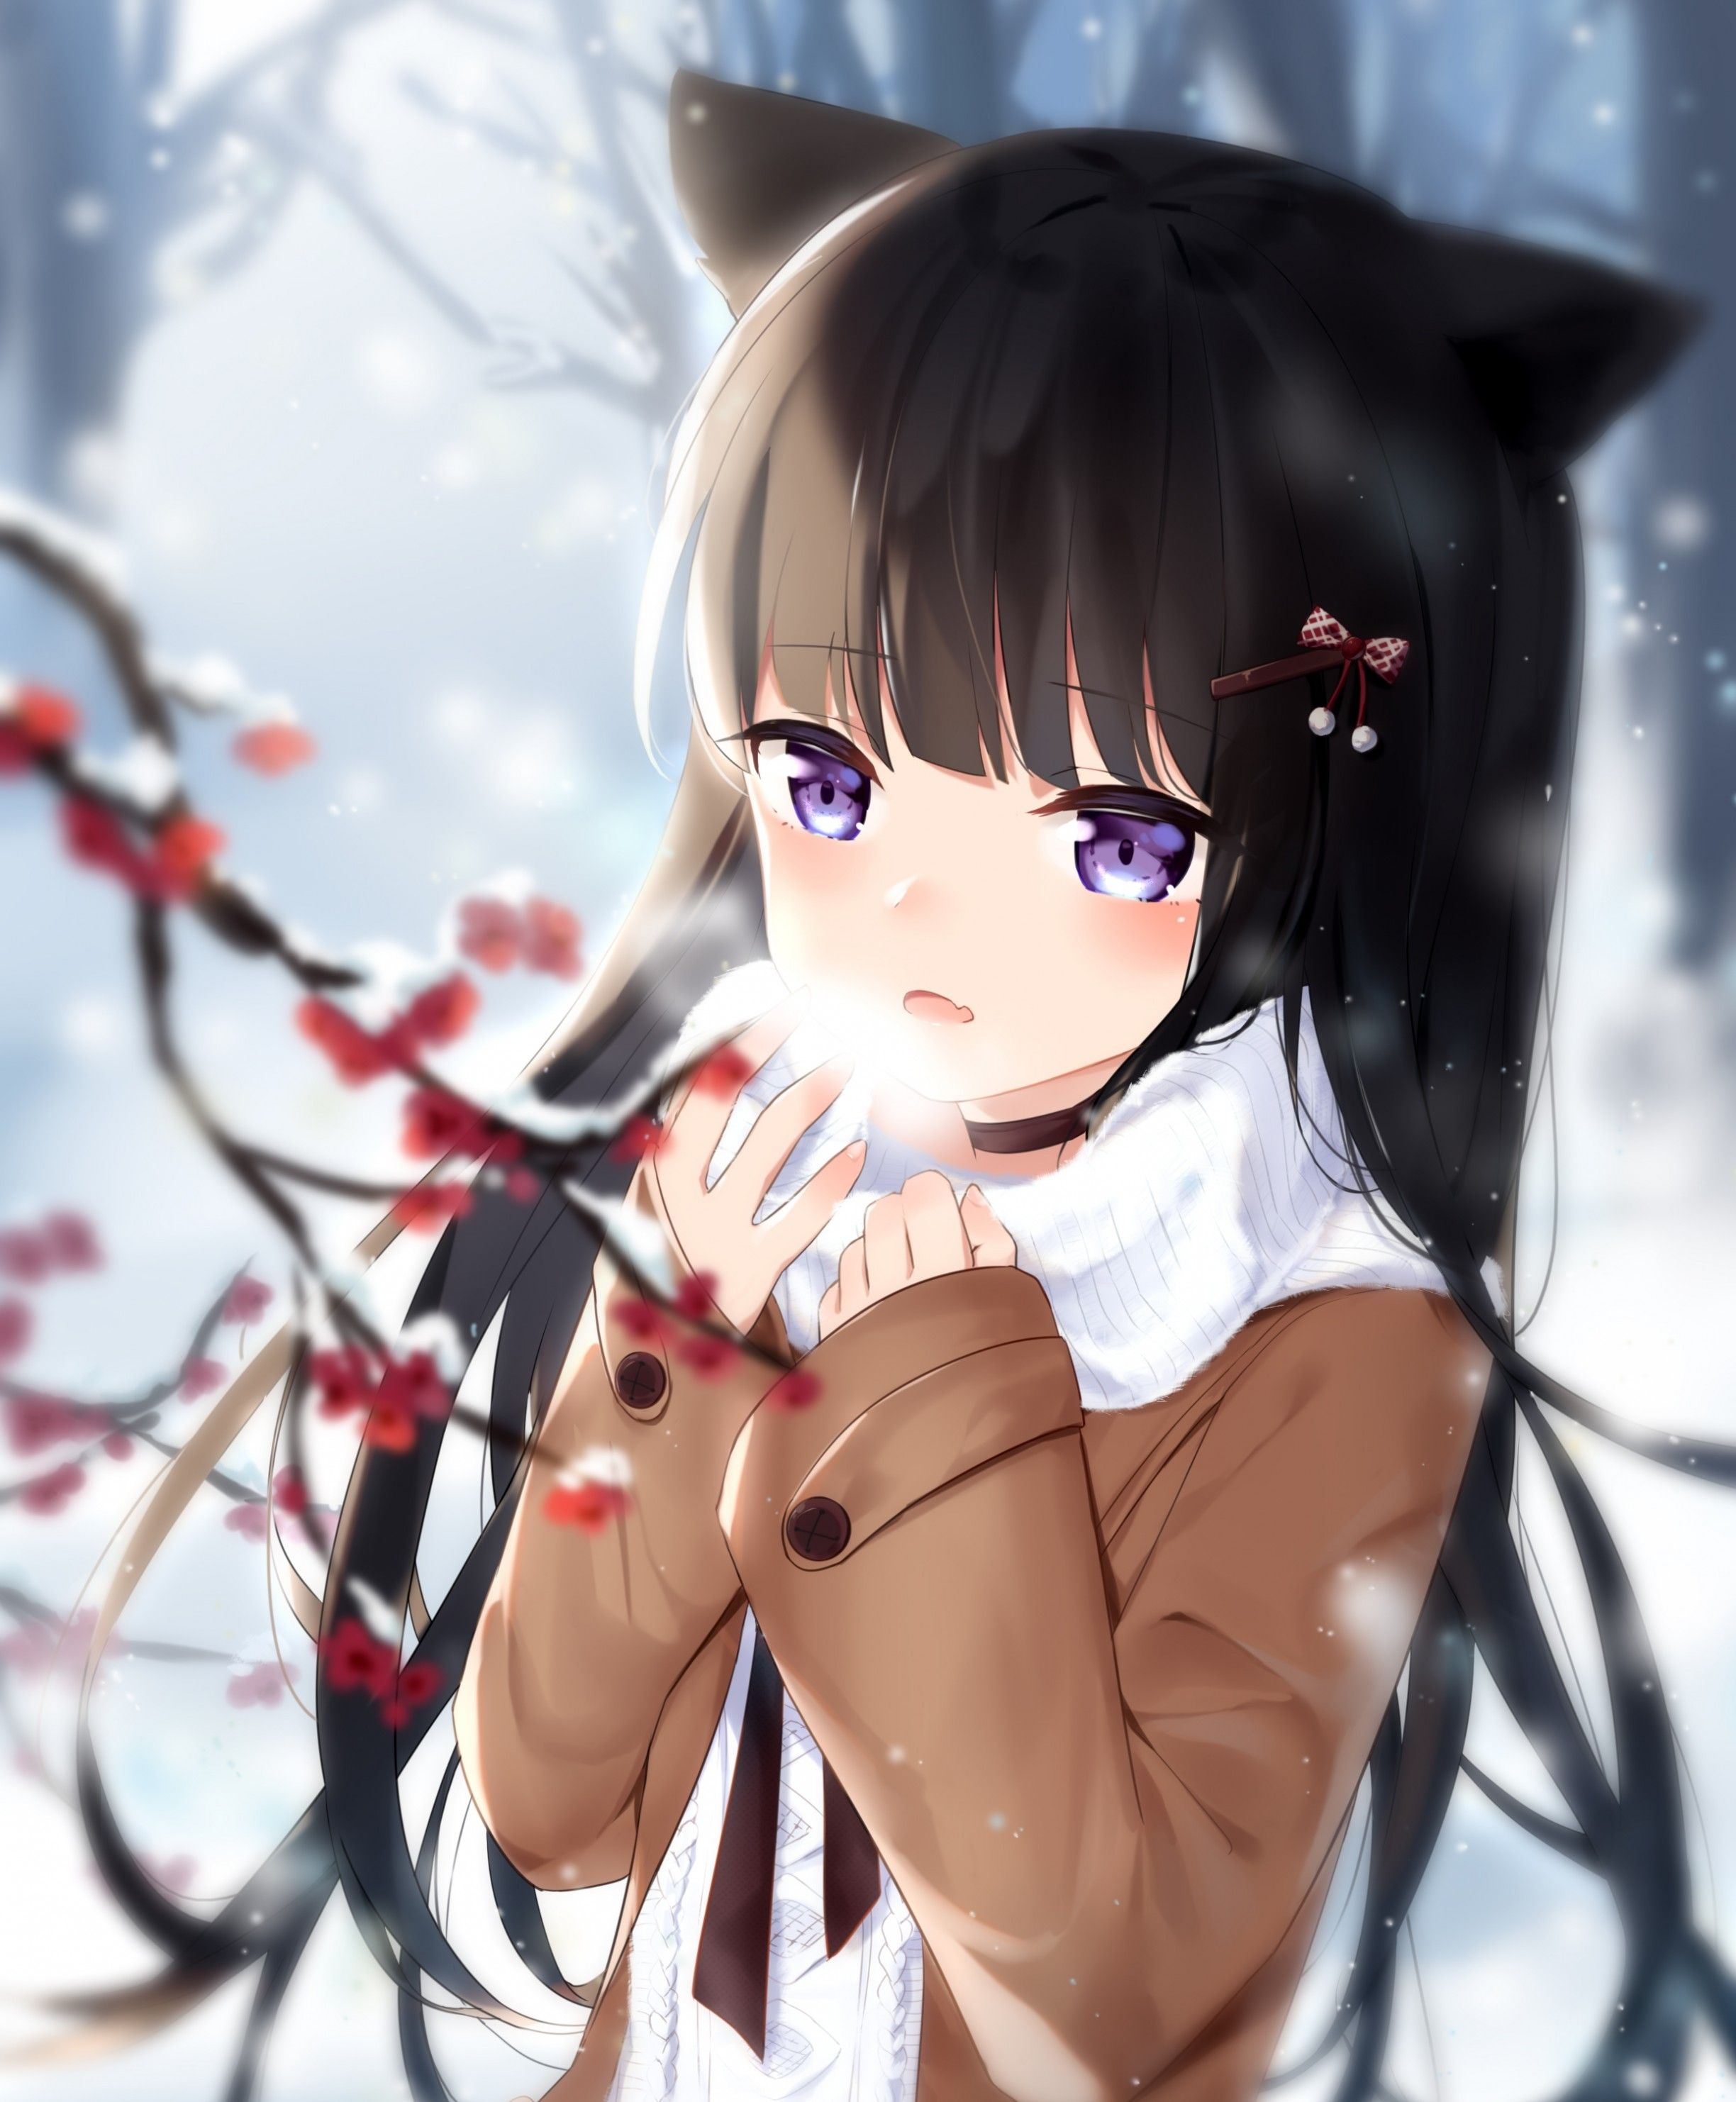 2448x2964 Download 2448x2964 Winter, Animal Ears, Cold, Anime Girl, Brown Hair ...